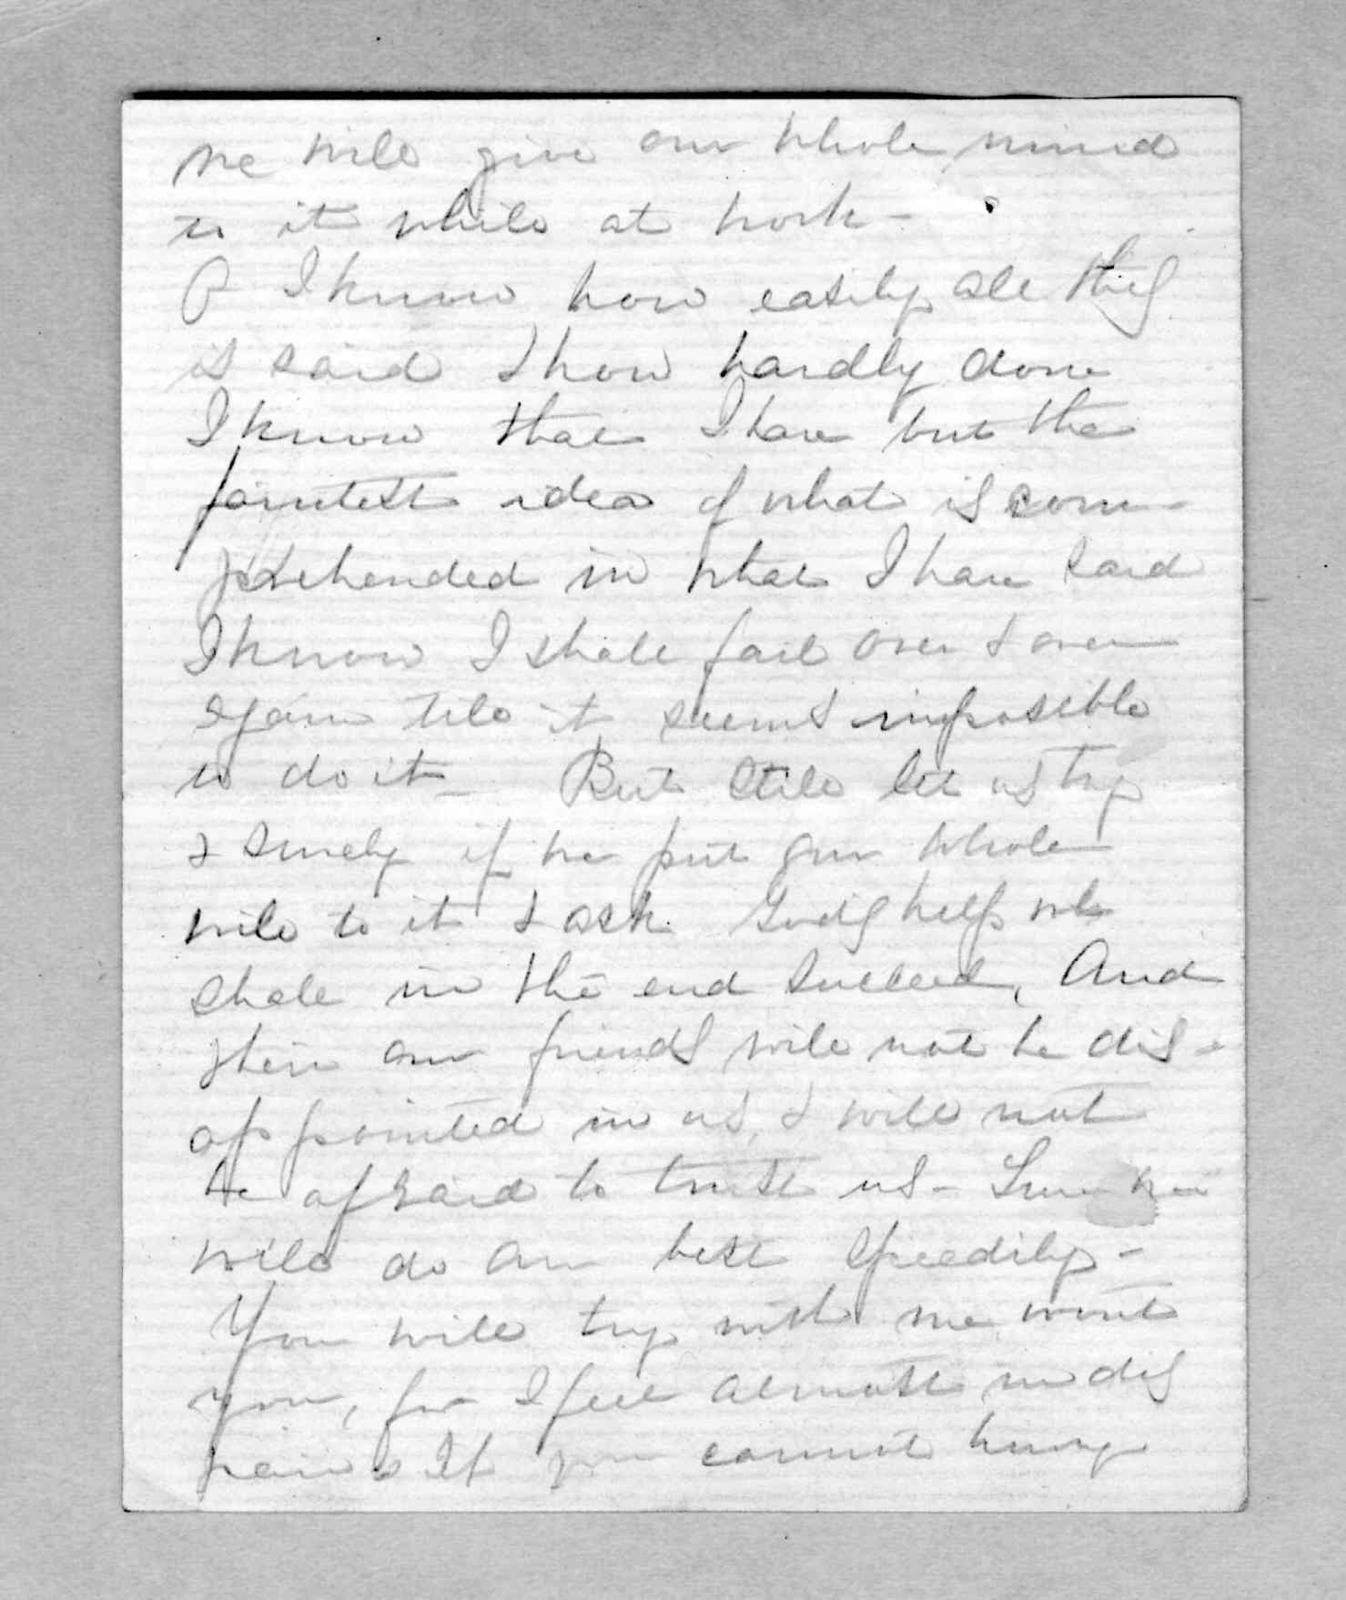 Letter from Mabel Hubbard Bell to Alexander Graham Bell, 1876